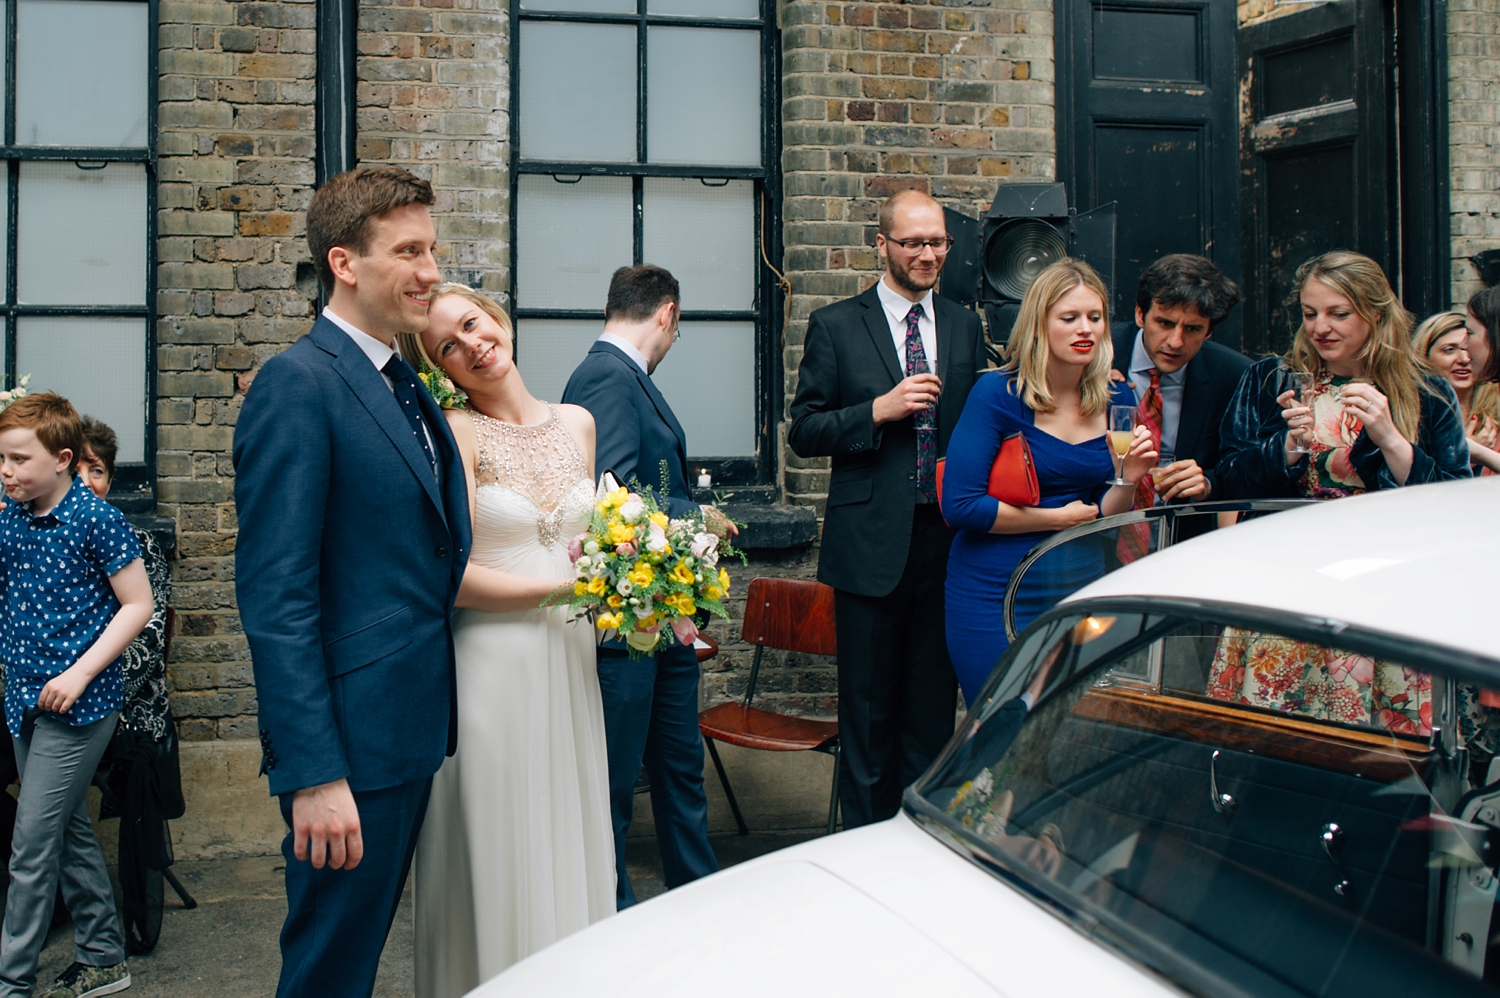 0104-lisa-devine-alternative-wedding-photography-london-hackney-dalston-london-photography-townhall-hotel.JPG